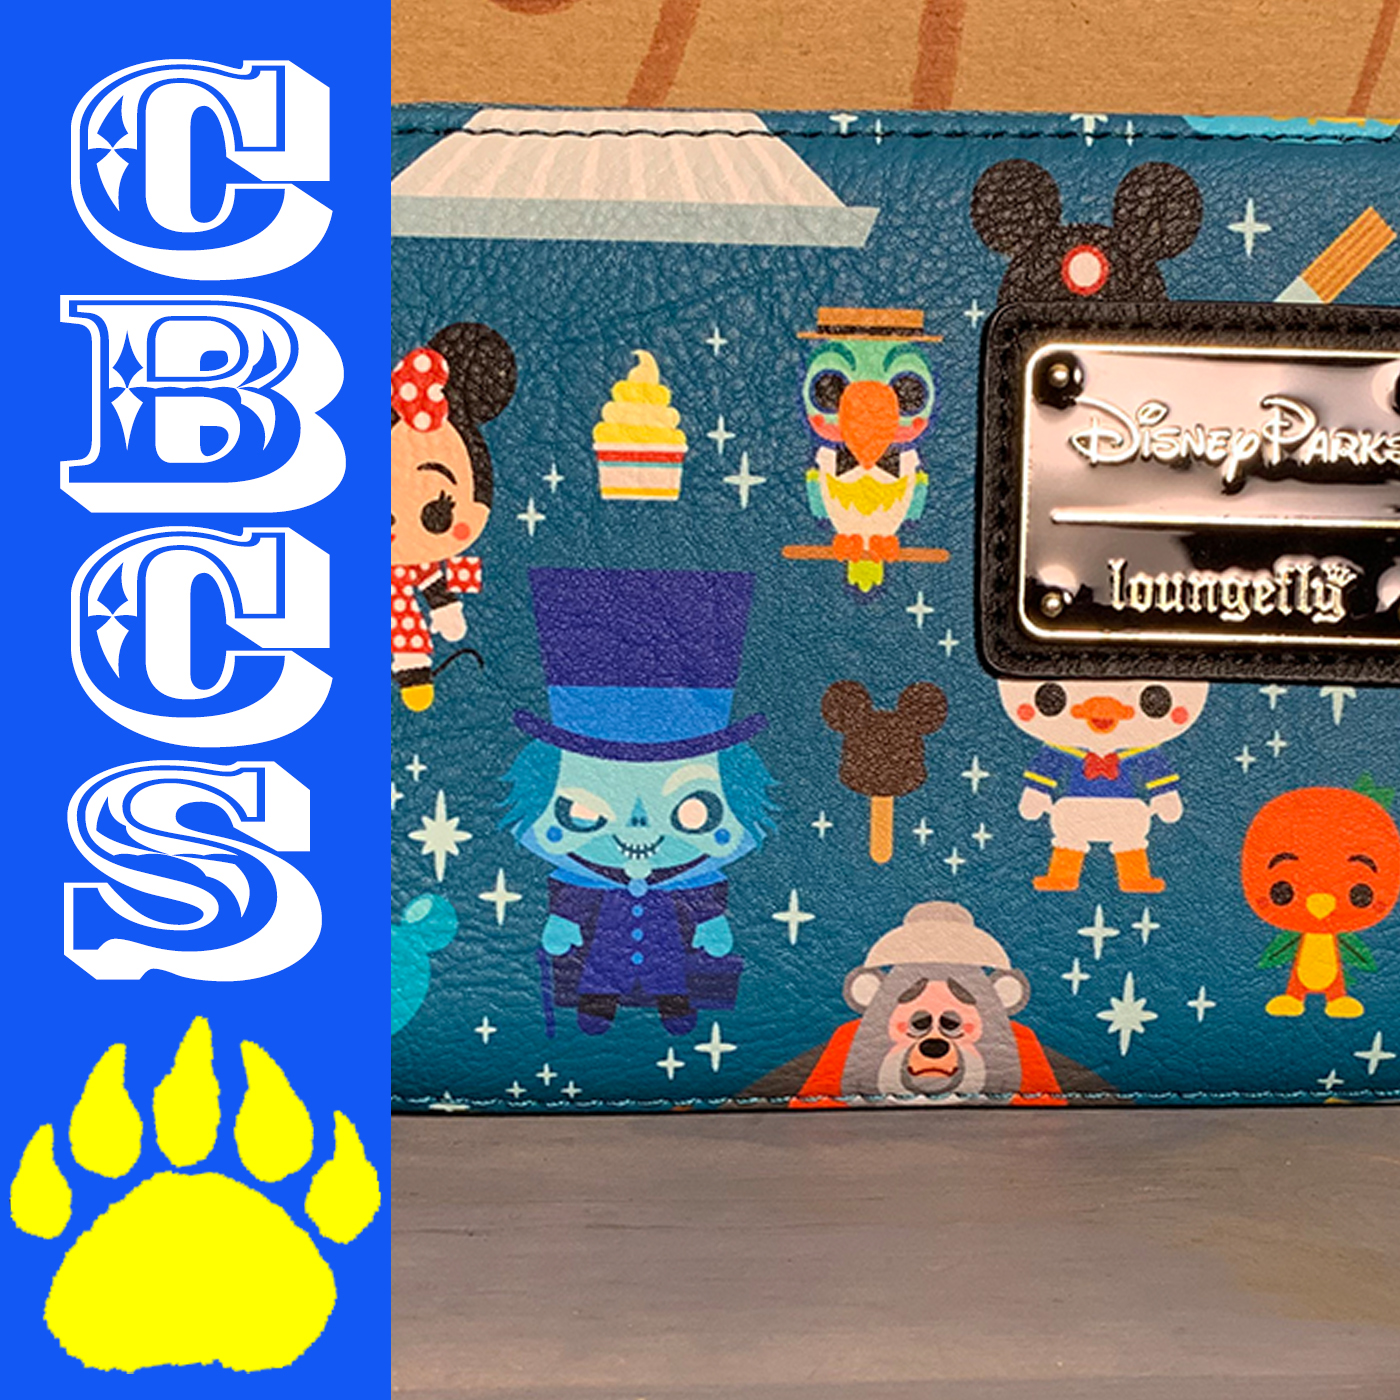 Artwork for 2019 Loungefly Cute Disney Parks Wristlet - Country Bear Collector Show #214